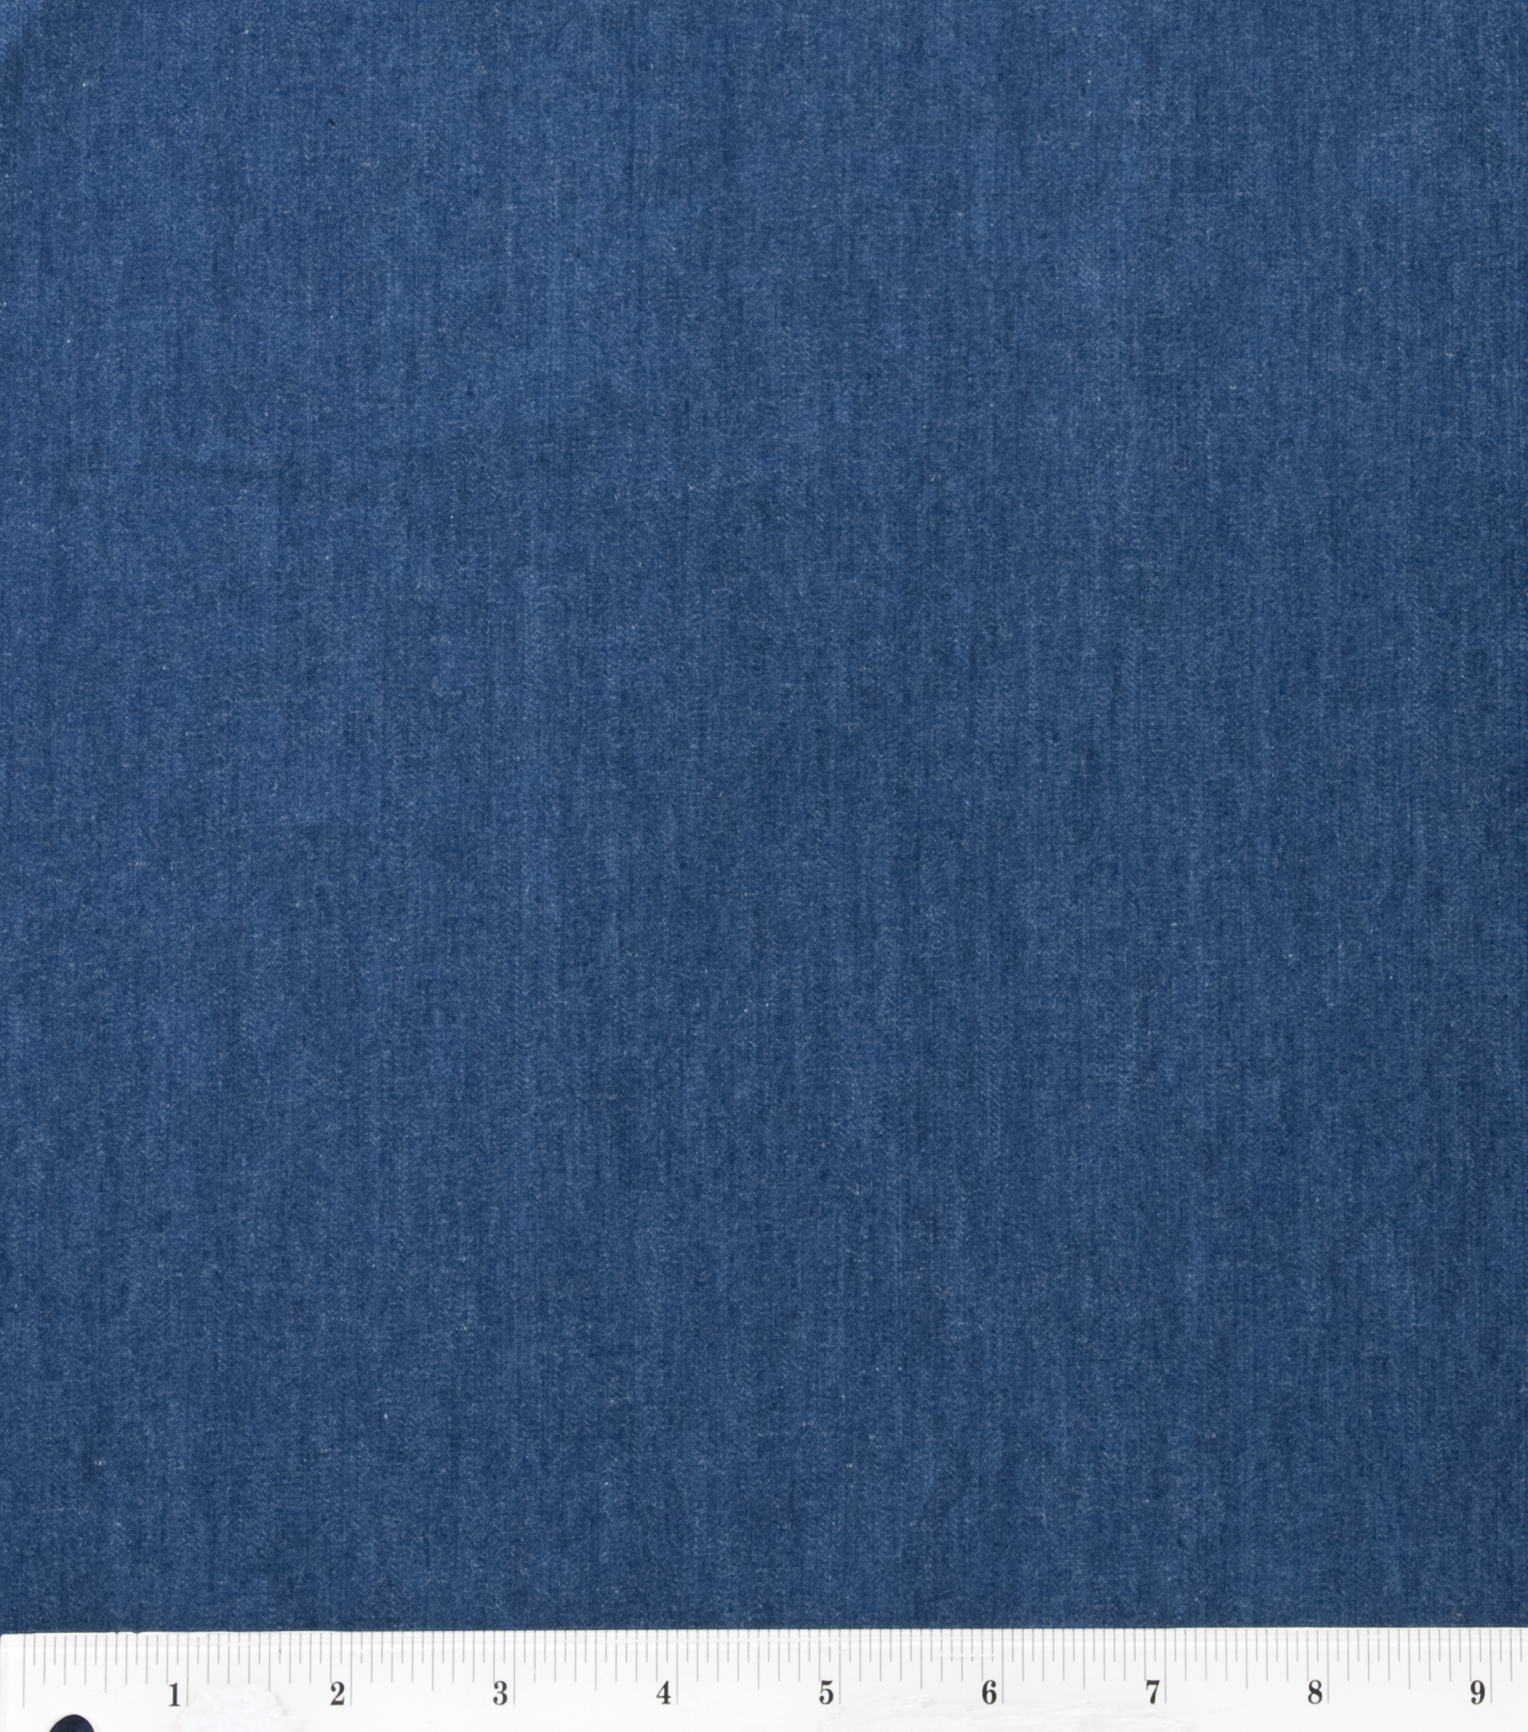 Sew Classics 4oz. Medium Wash Denim Fabric